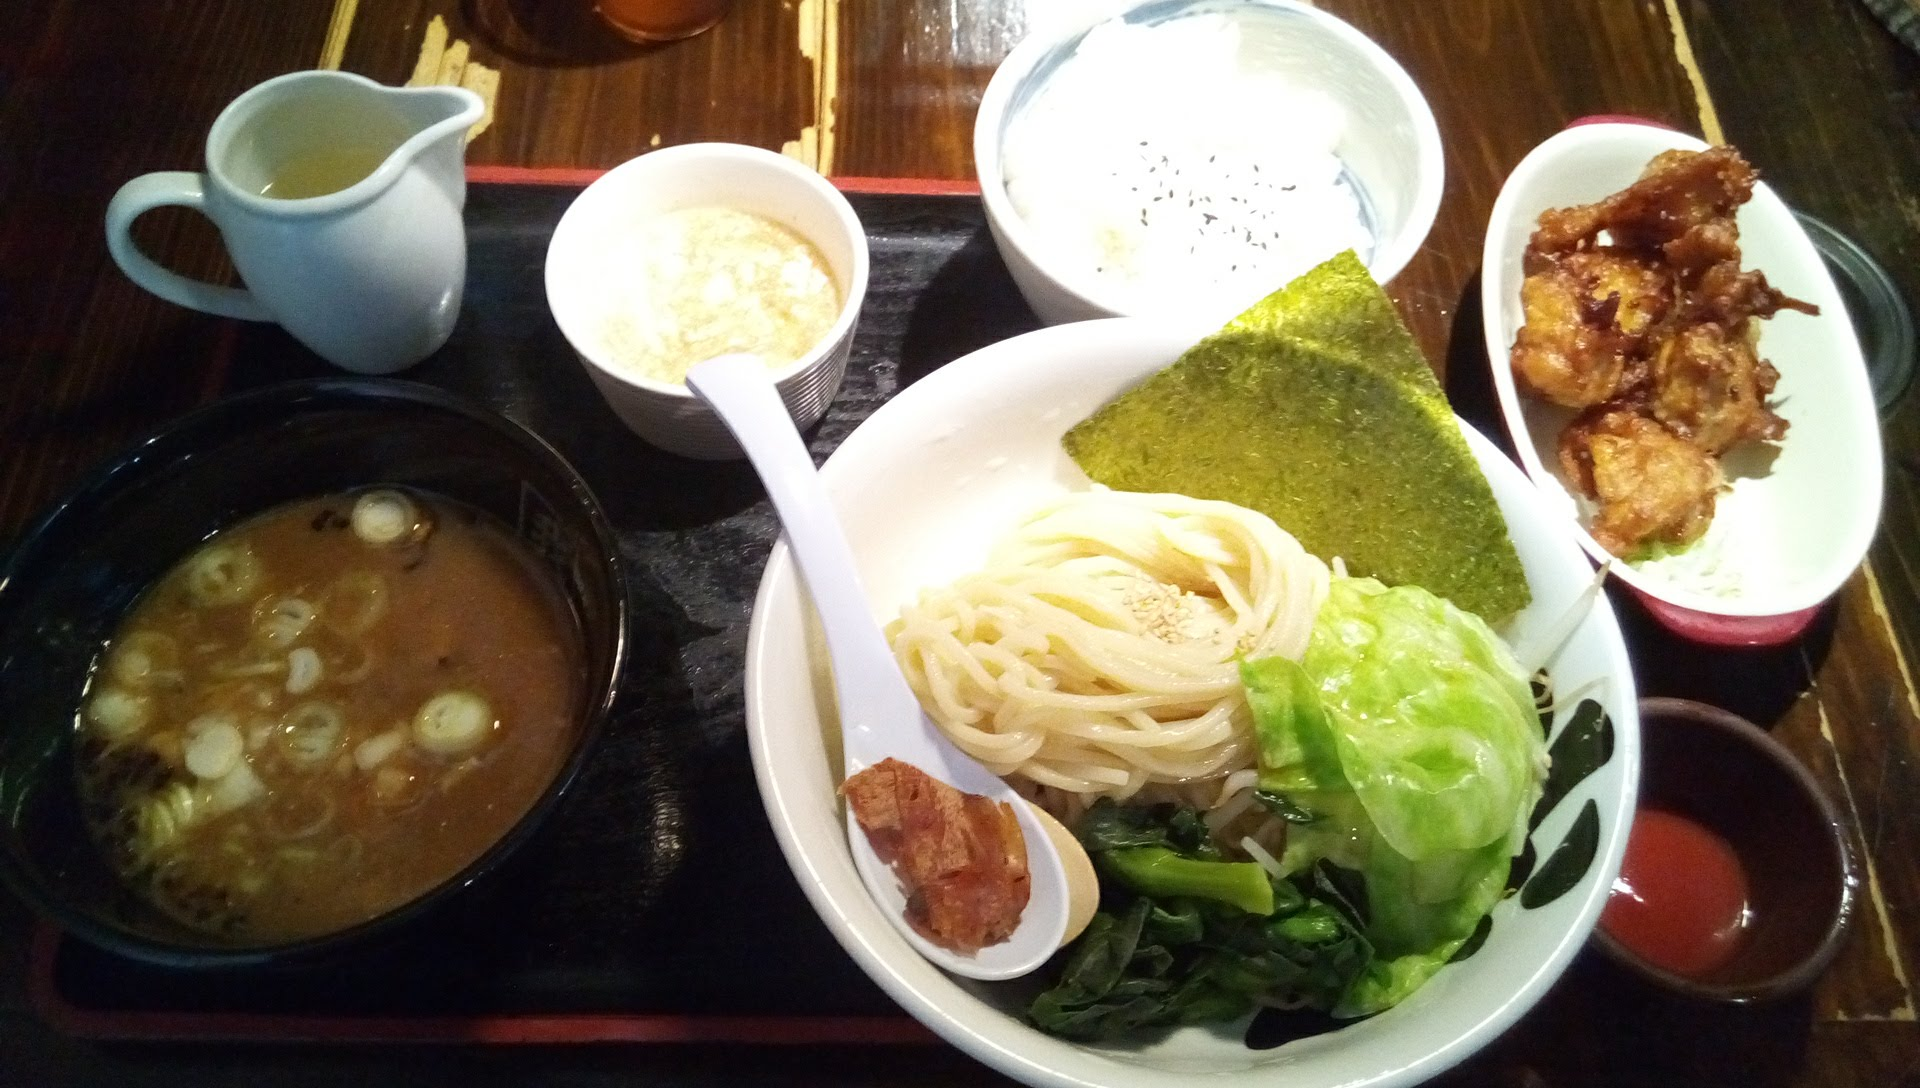 Tsukemen set of Garyuya